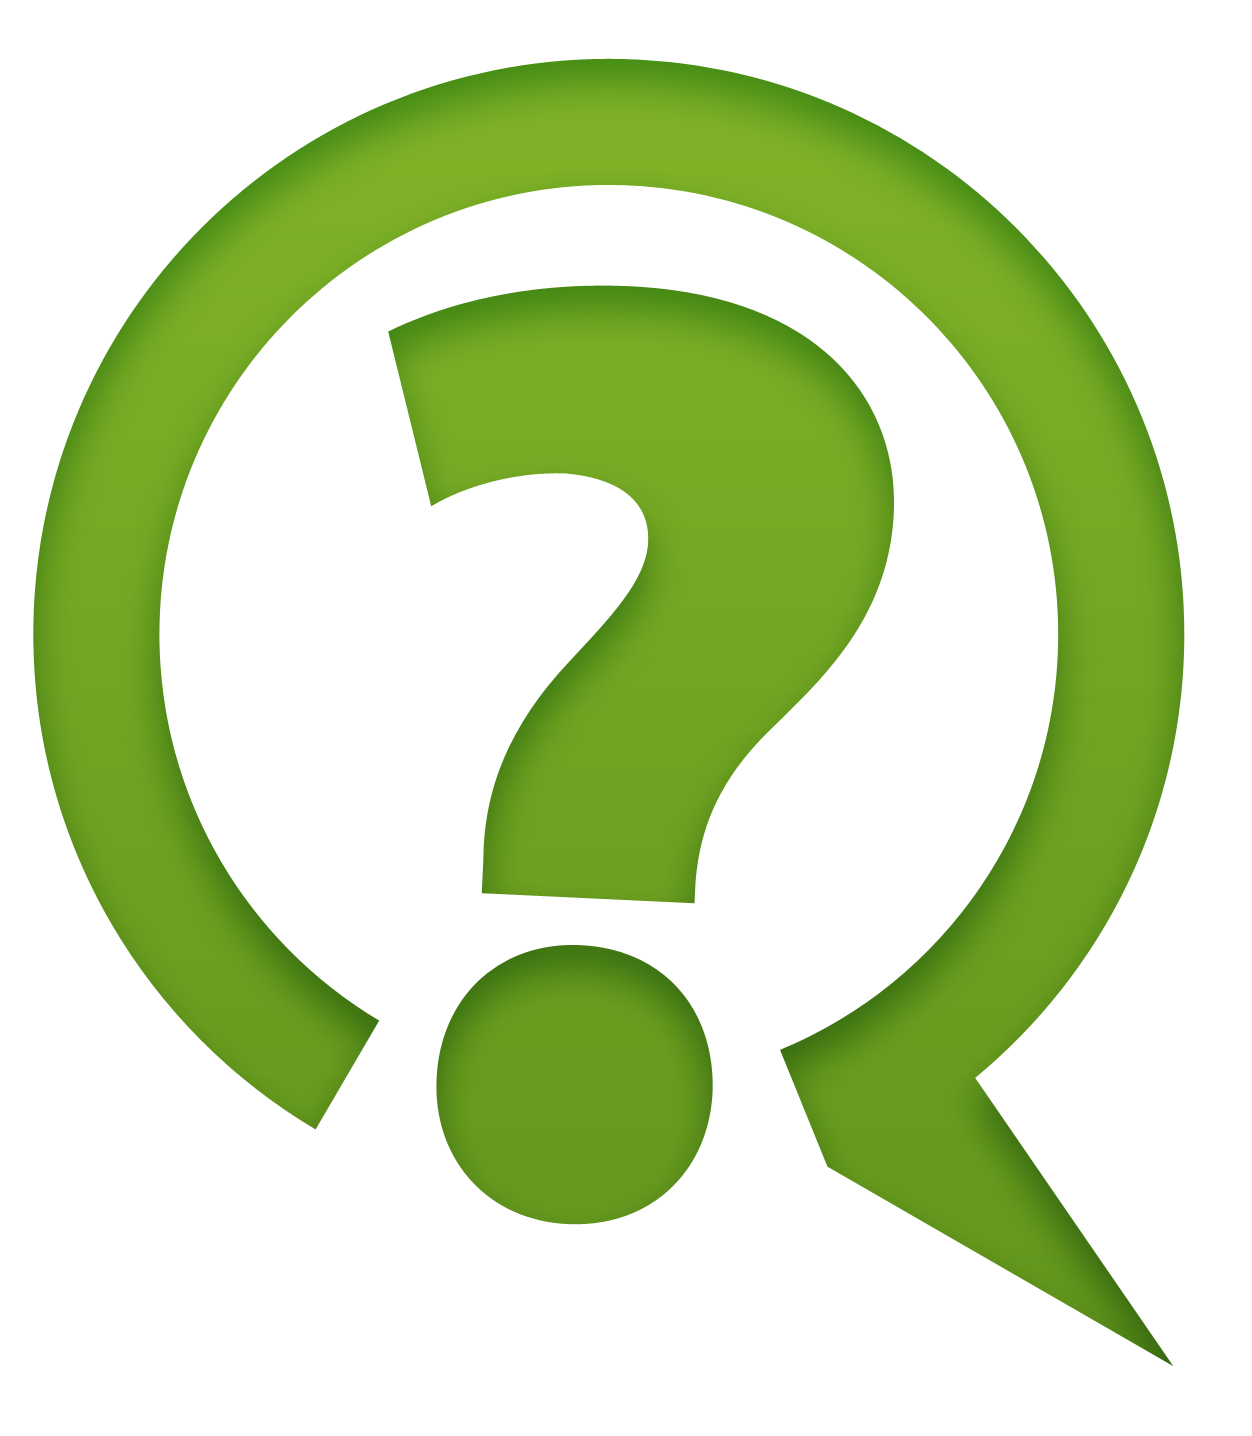 Free Icons Png:Green Question Mark Icon Png ClipArt - PNG Question